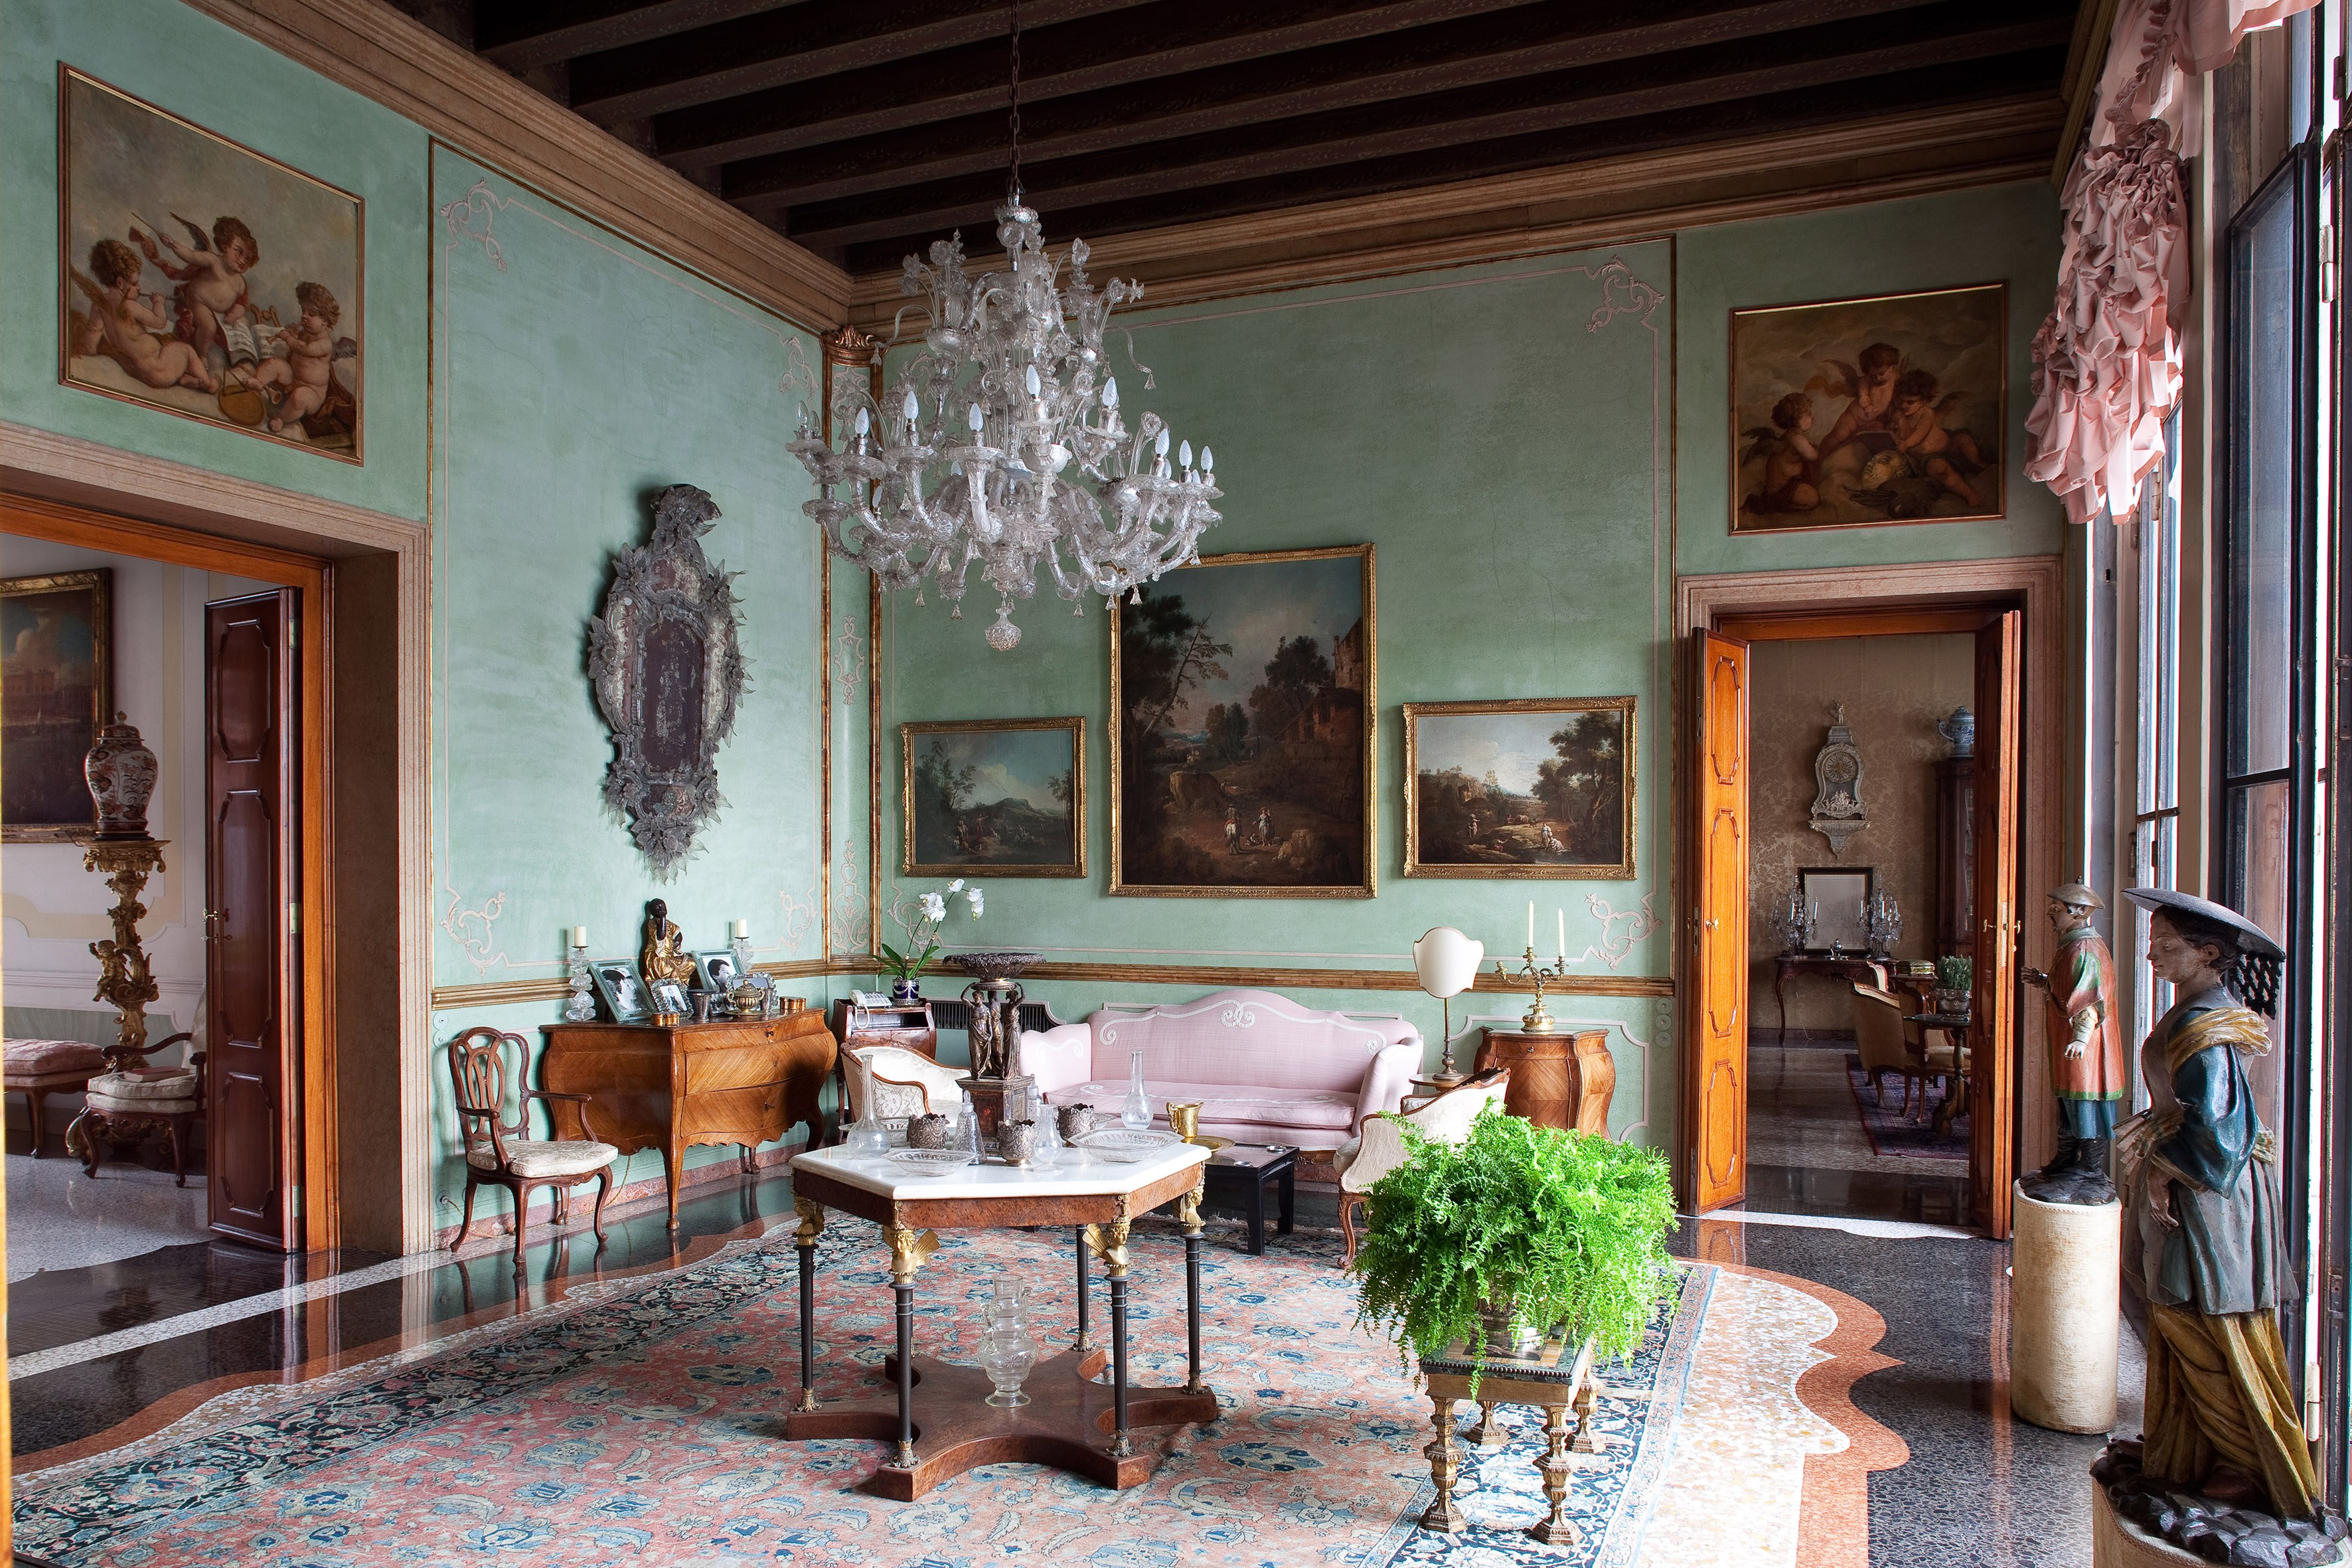 Inside Venice Book - Tour Italian Palazzos and Homes